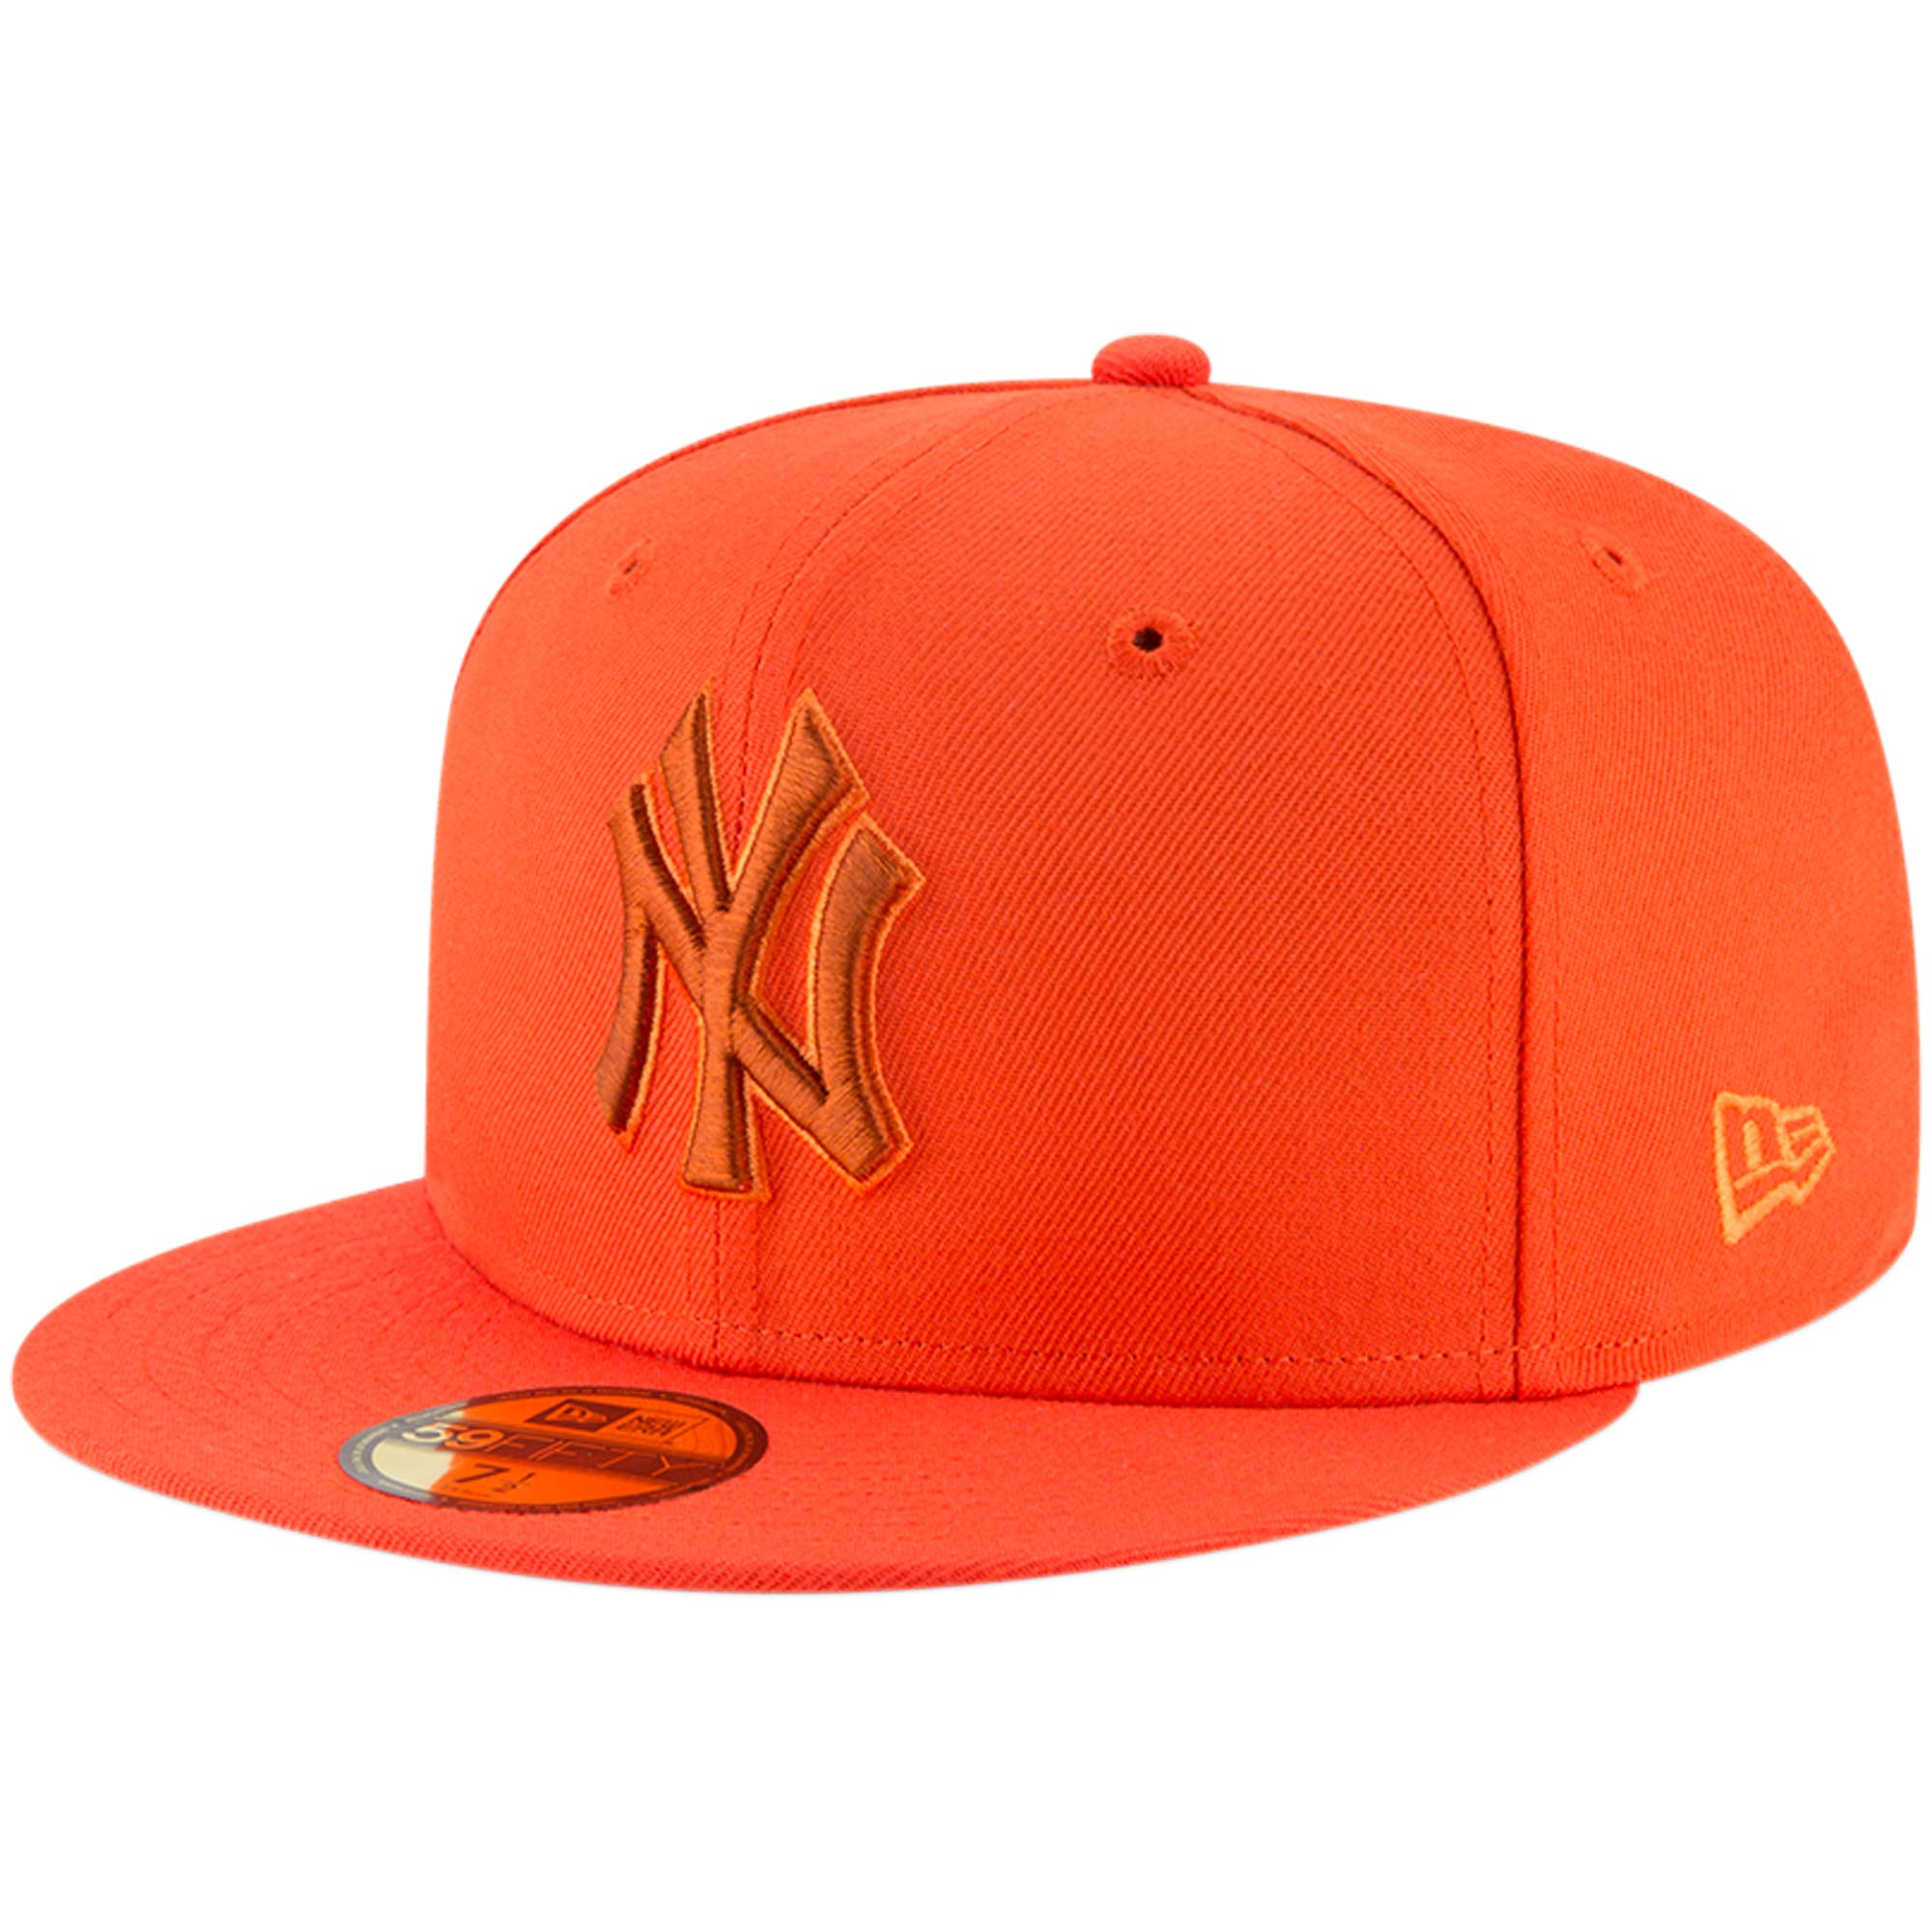 New York Yankees New Era League Pop 59FIFTY Fitted Hat - Orange